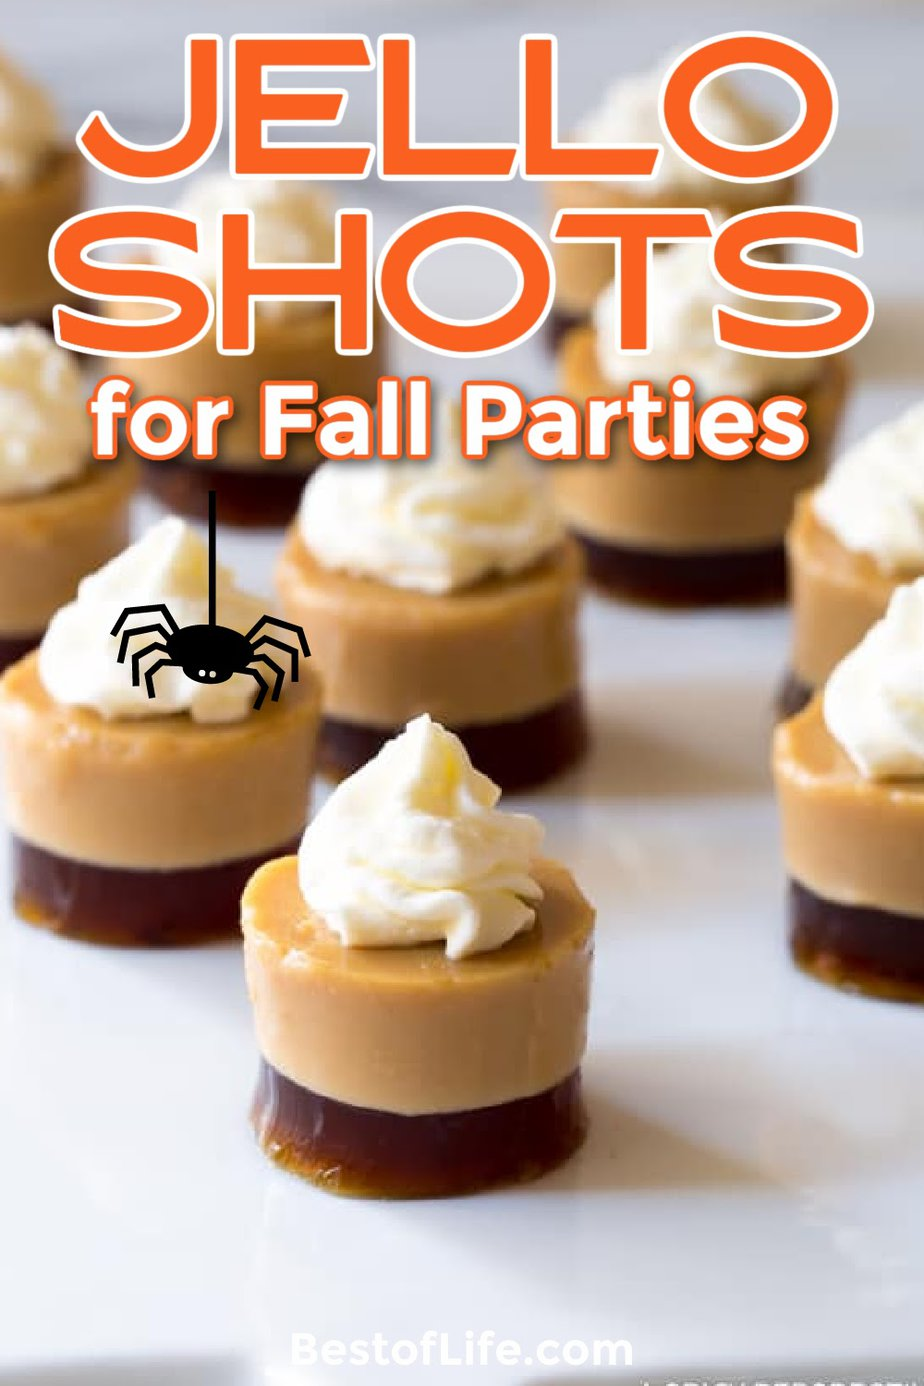 Spice up those fall and winter parties with colorful fall Jello shot recipes! Enjoy these fall Jello shots with family and friends! Fall Cocktail Recipes   Party Planning   Fall Party Recipes   Halloween Recipes   Thanksgiving Recipes   Halloween Cocktail Recipes   Thanksgiving Cocktail Recipes #fallrecipes #jelloshots via @thebestoflife